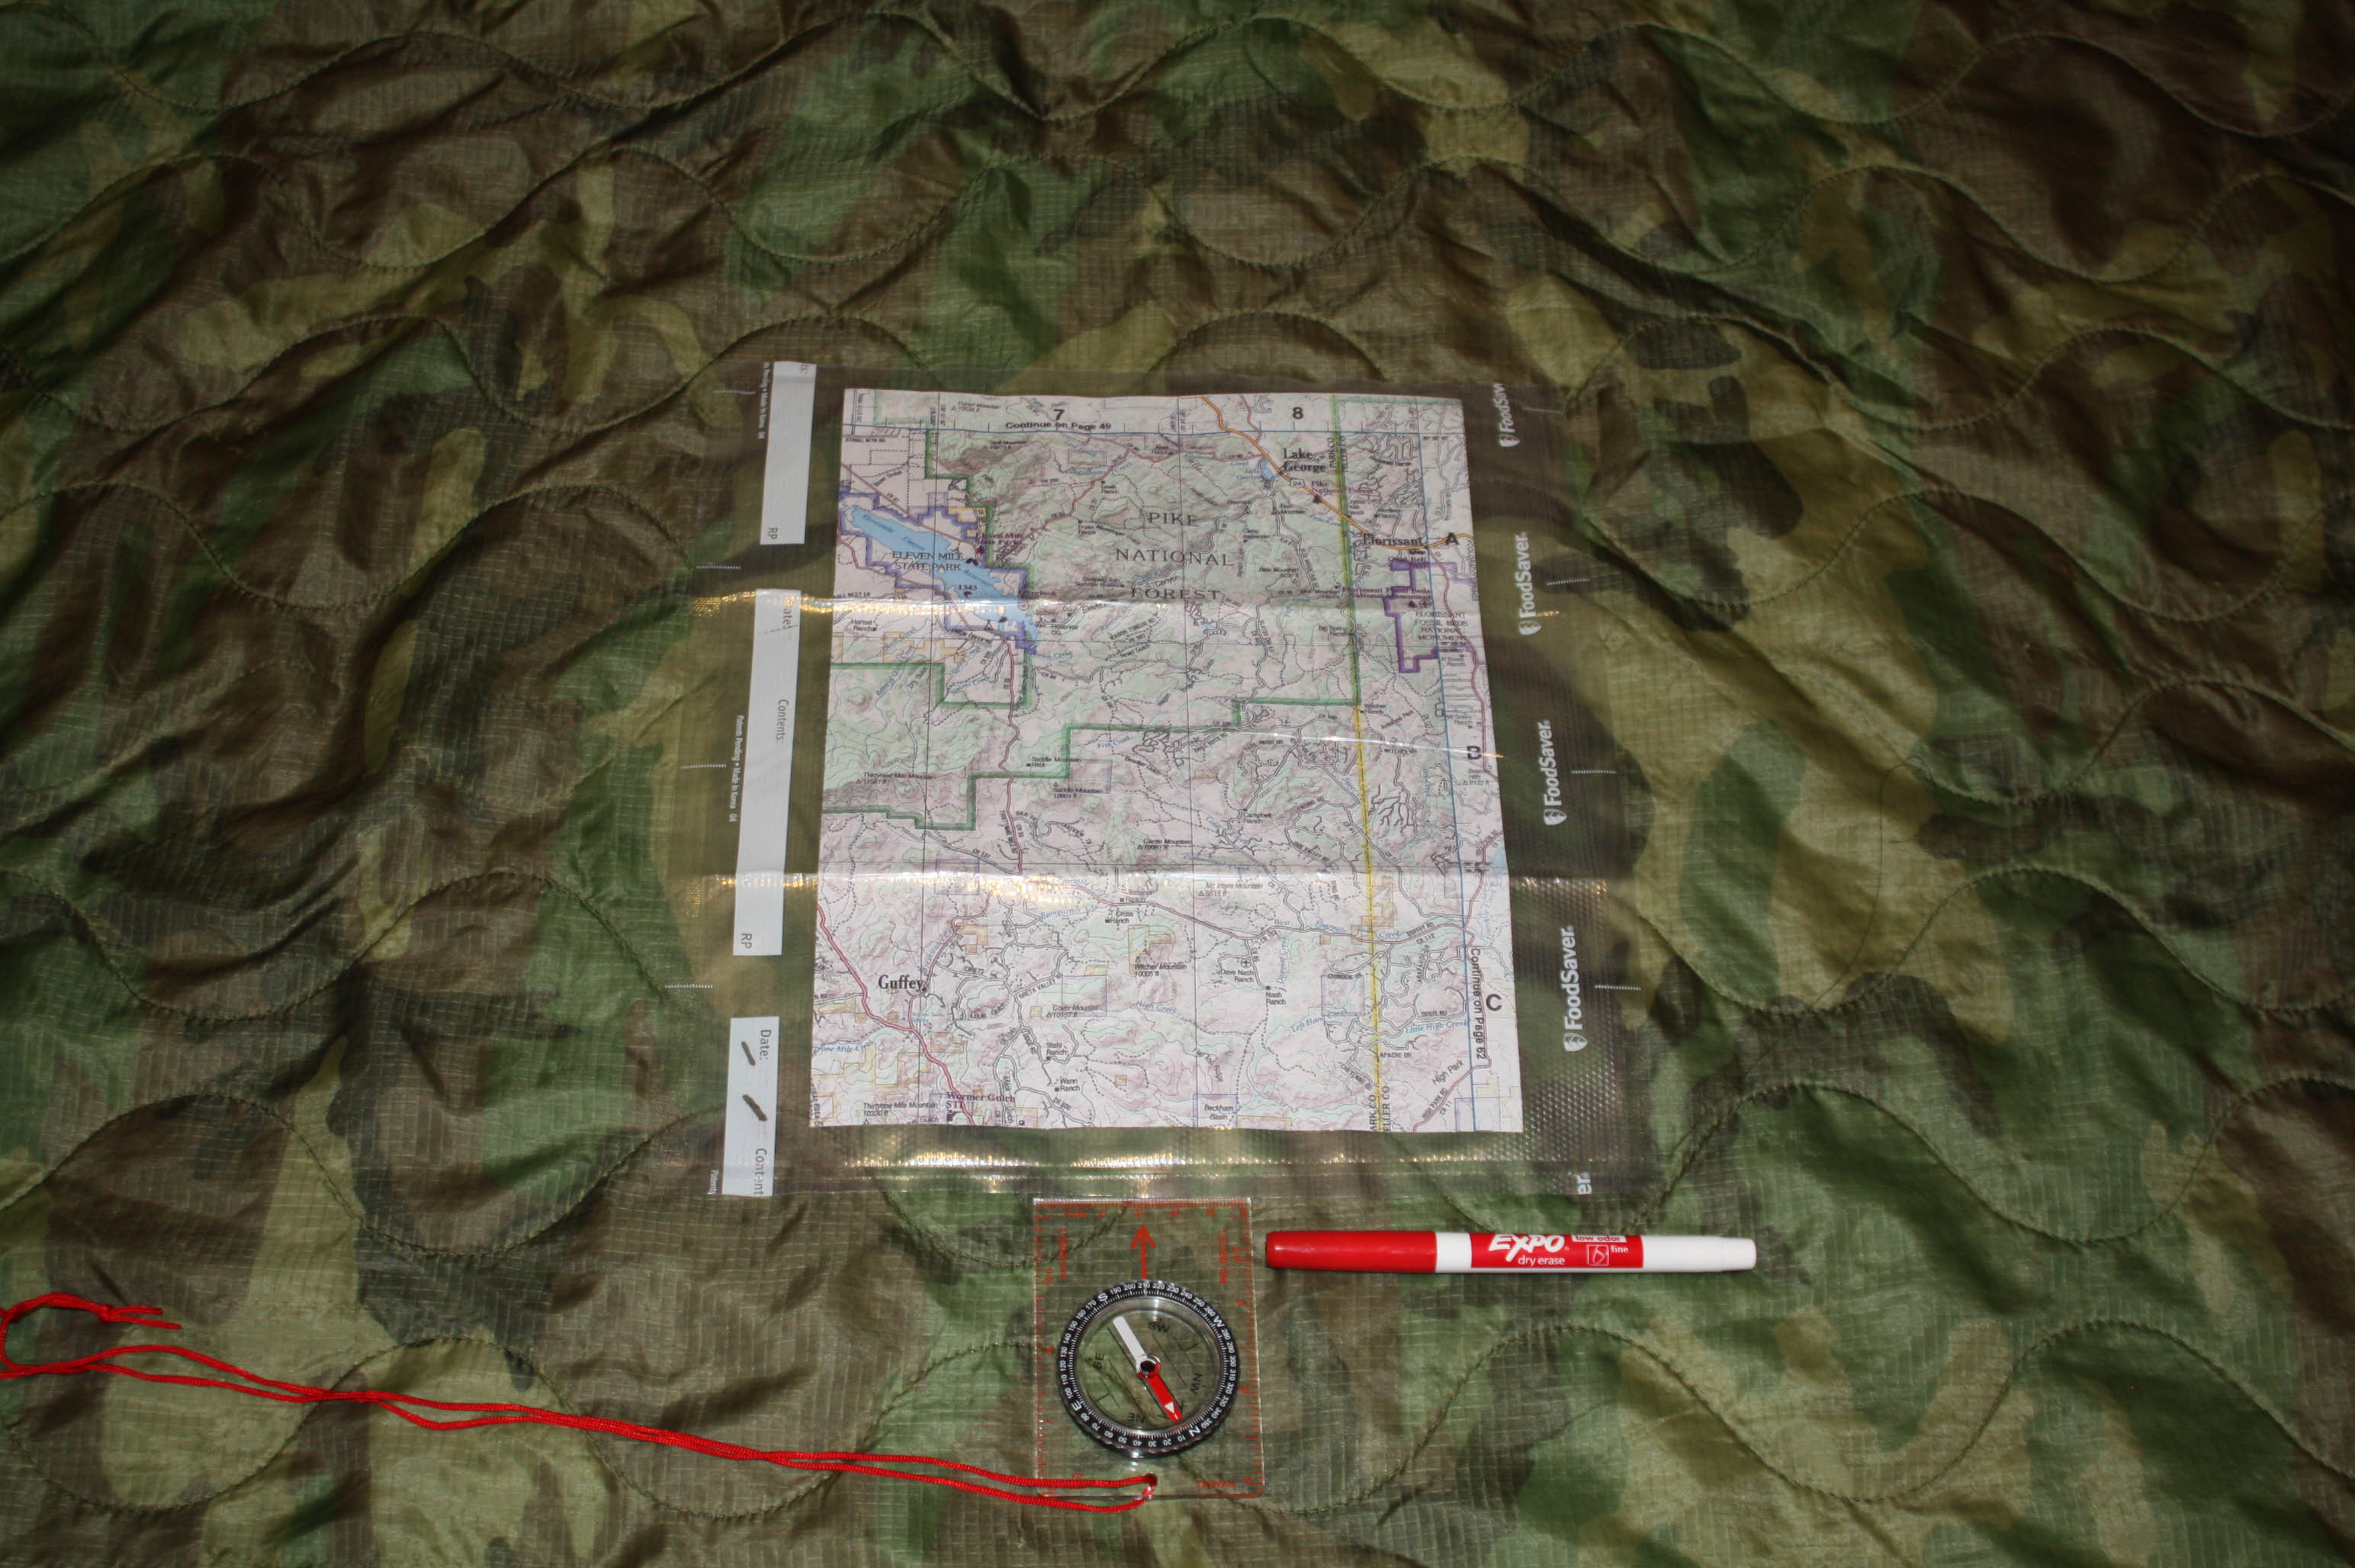 Basic Land Navigation